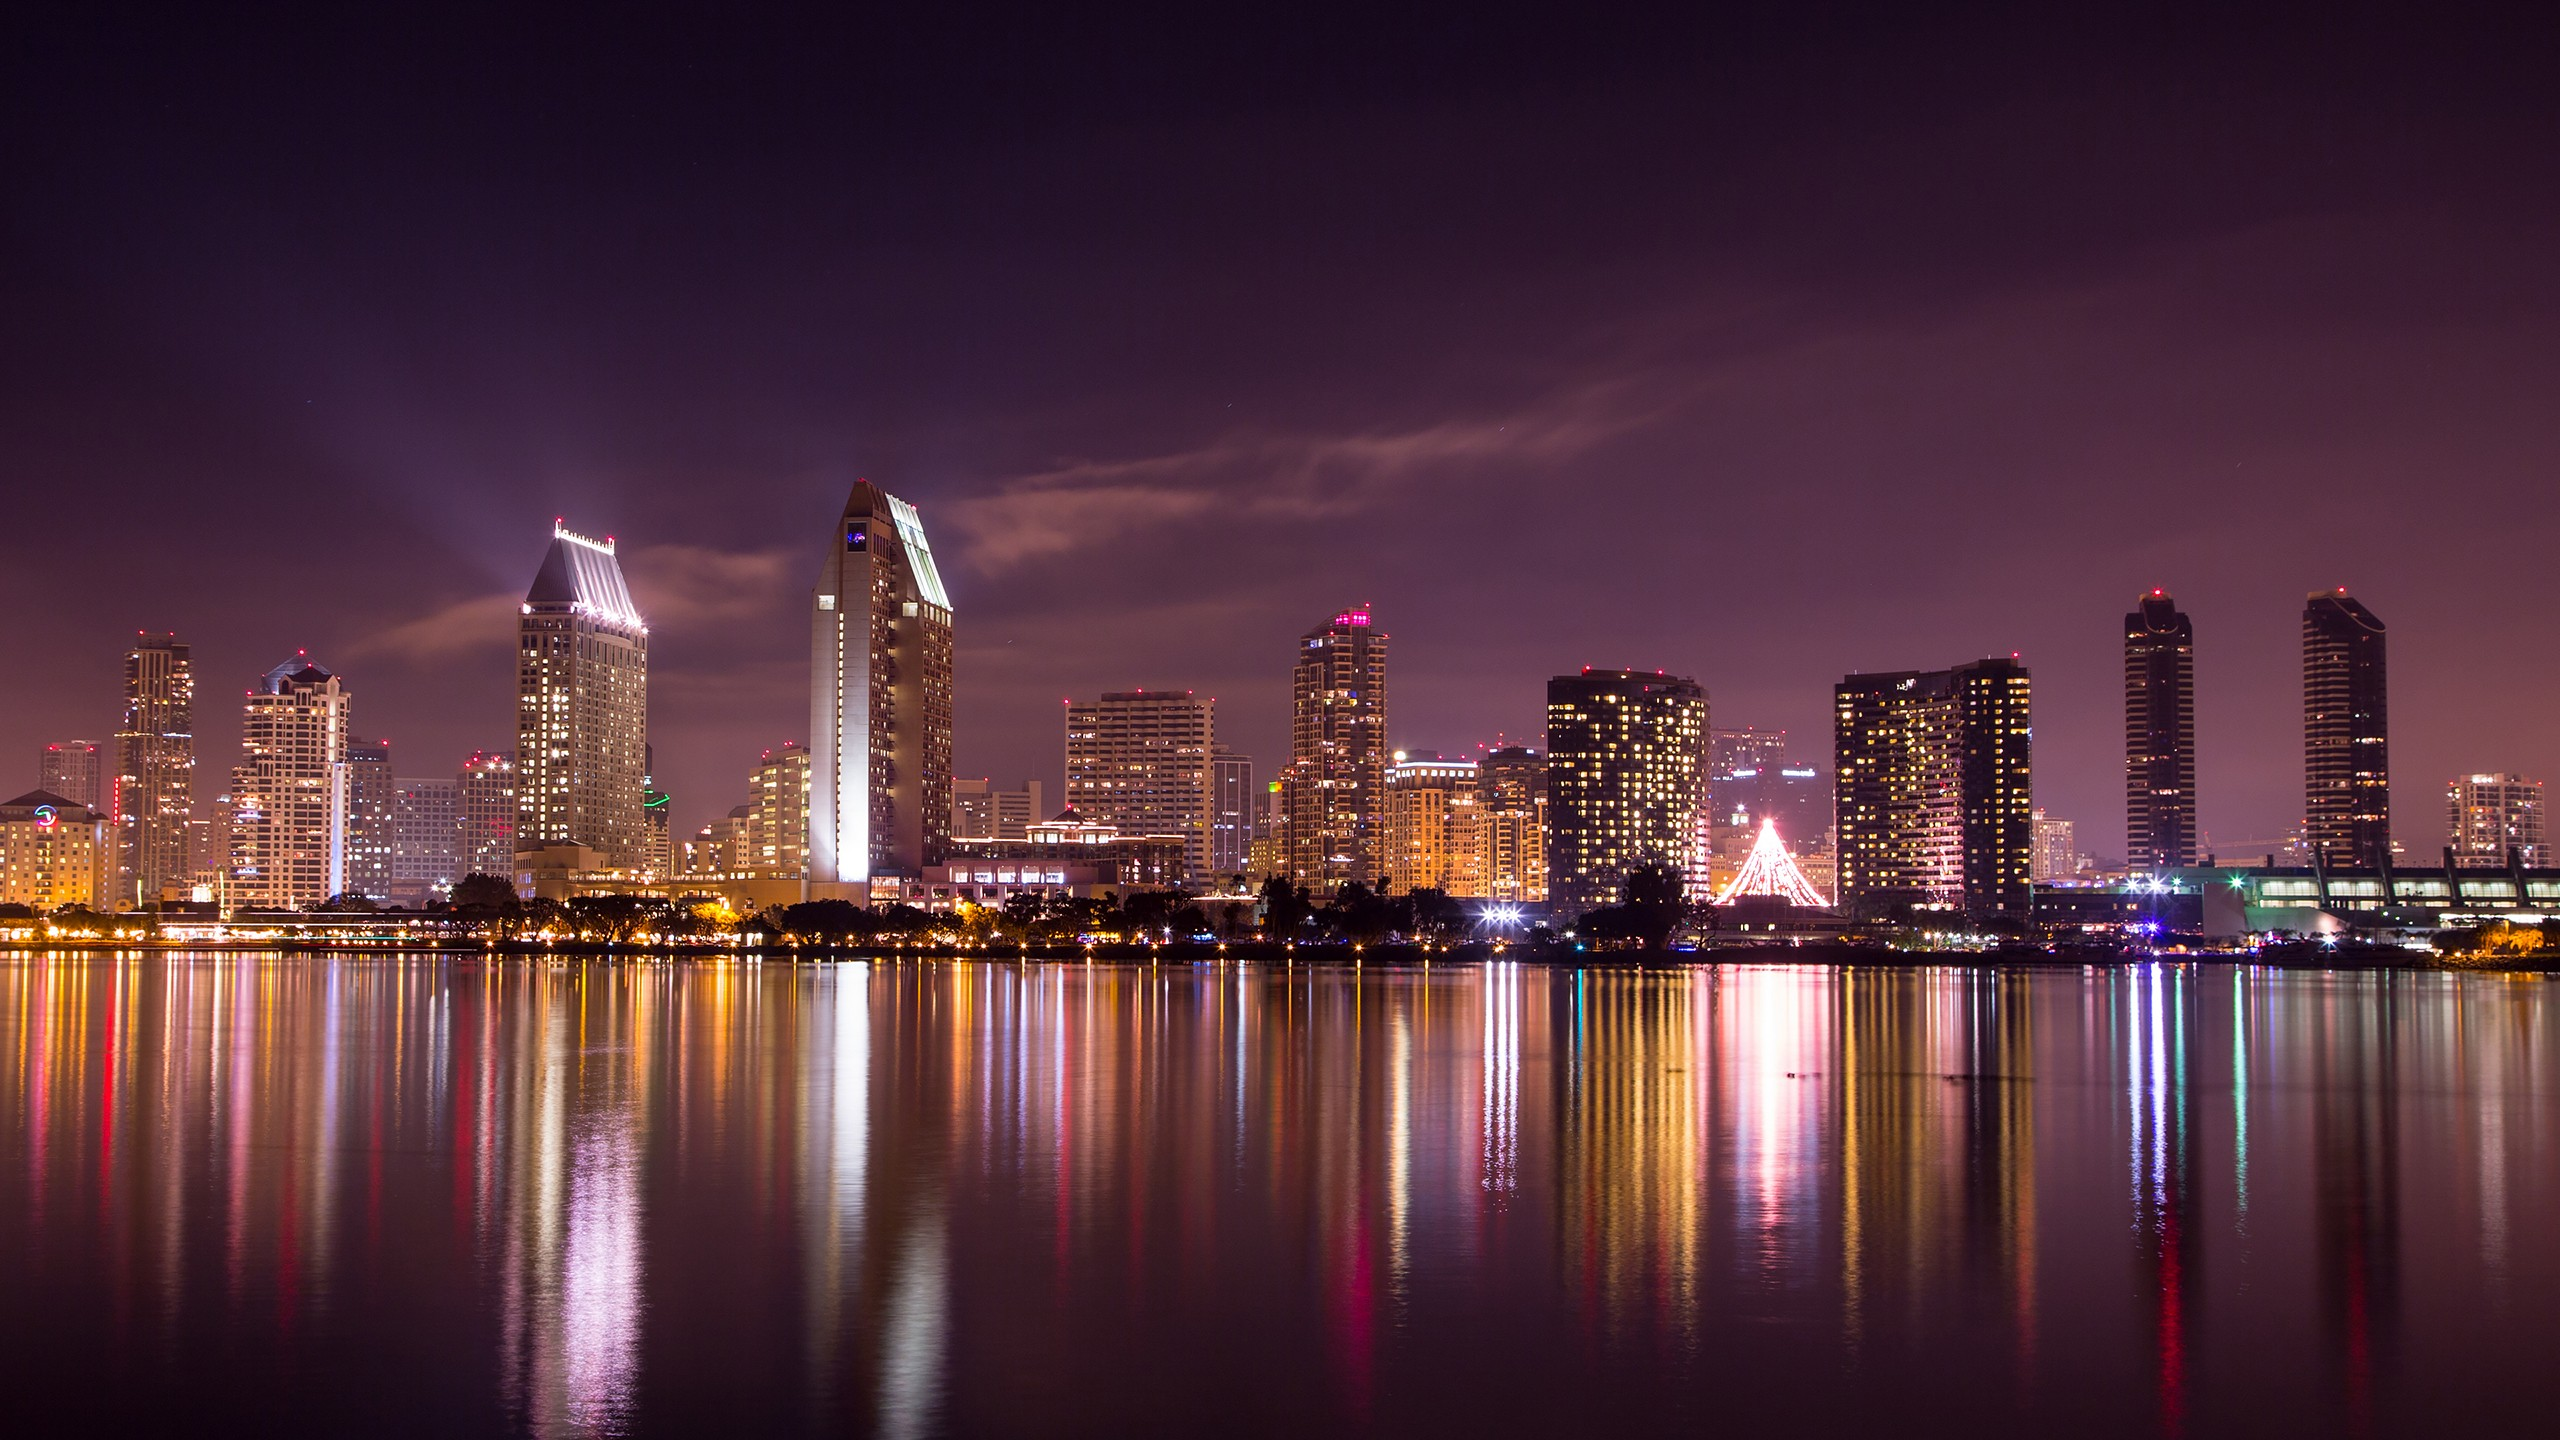 Cute Hd Wallpapers For Iphone 5 San Diego Skyline Wallpapers Hd Wallpapers Id 13170